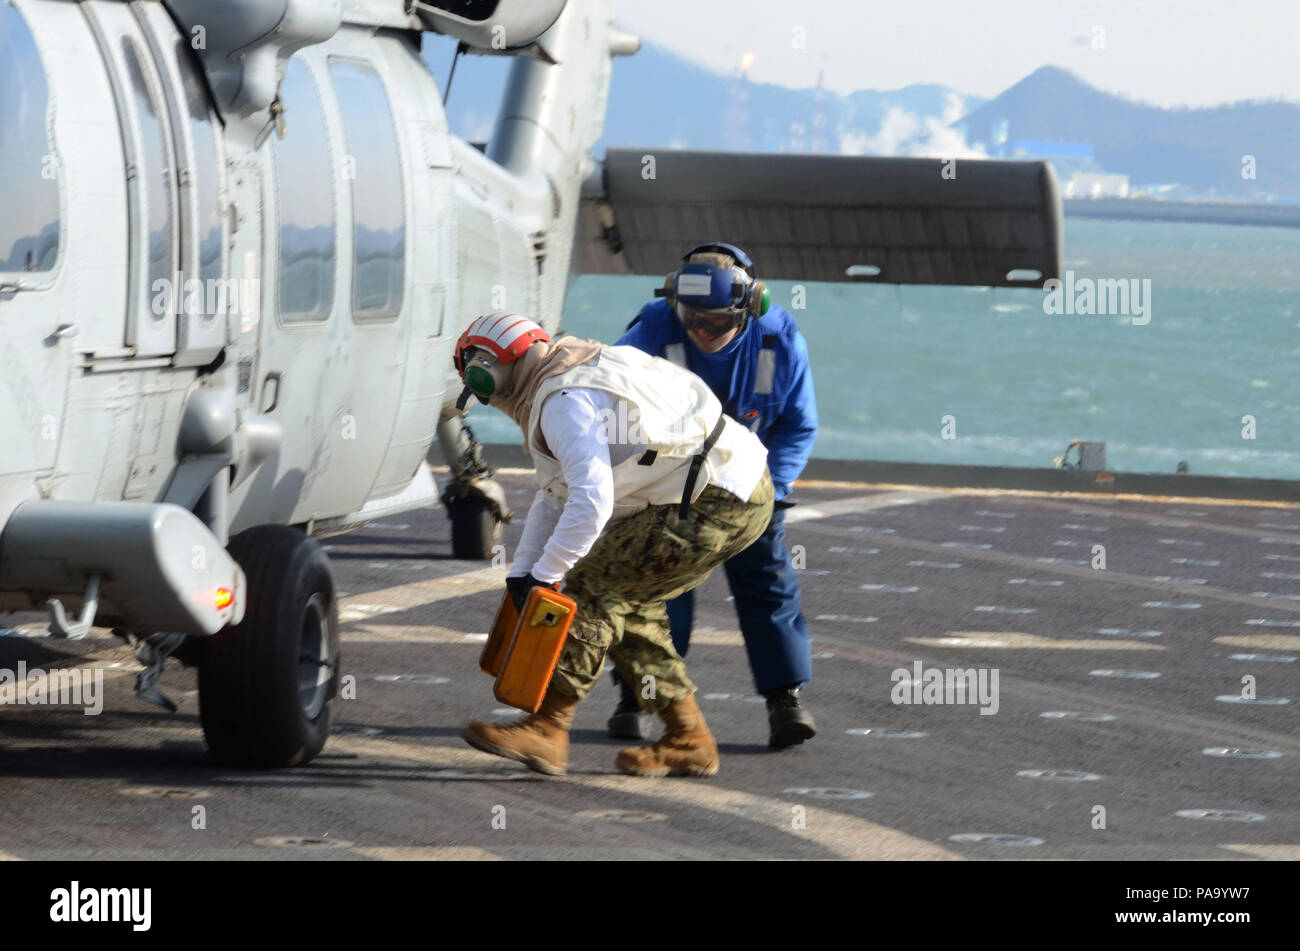 160310-N-WJ640-153 GWANGYANG, South Korea (Mar. 10, 2016)—Sailors prepare an MH-60S helicopter, with Helicopter Sea Combat Squadron TWO FIVE, for takeoff on board dry cargo/ammunition ship USNS Sacagawea (T-AKE 2), March 10. The Sacagewea was one of three MPF ships that offloaded her cargo in support of Exercise Ssang Yong 16, under the Exercise Freedom Banner 16 directive. (U.S. Navy photo by Mass Communication Specialist 3rd Class Madailein Abbott/Released) Stock Photo